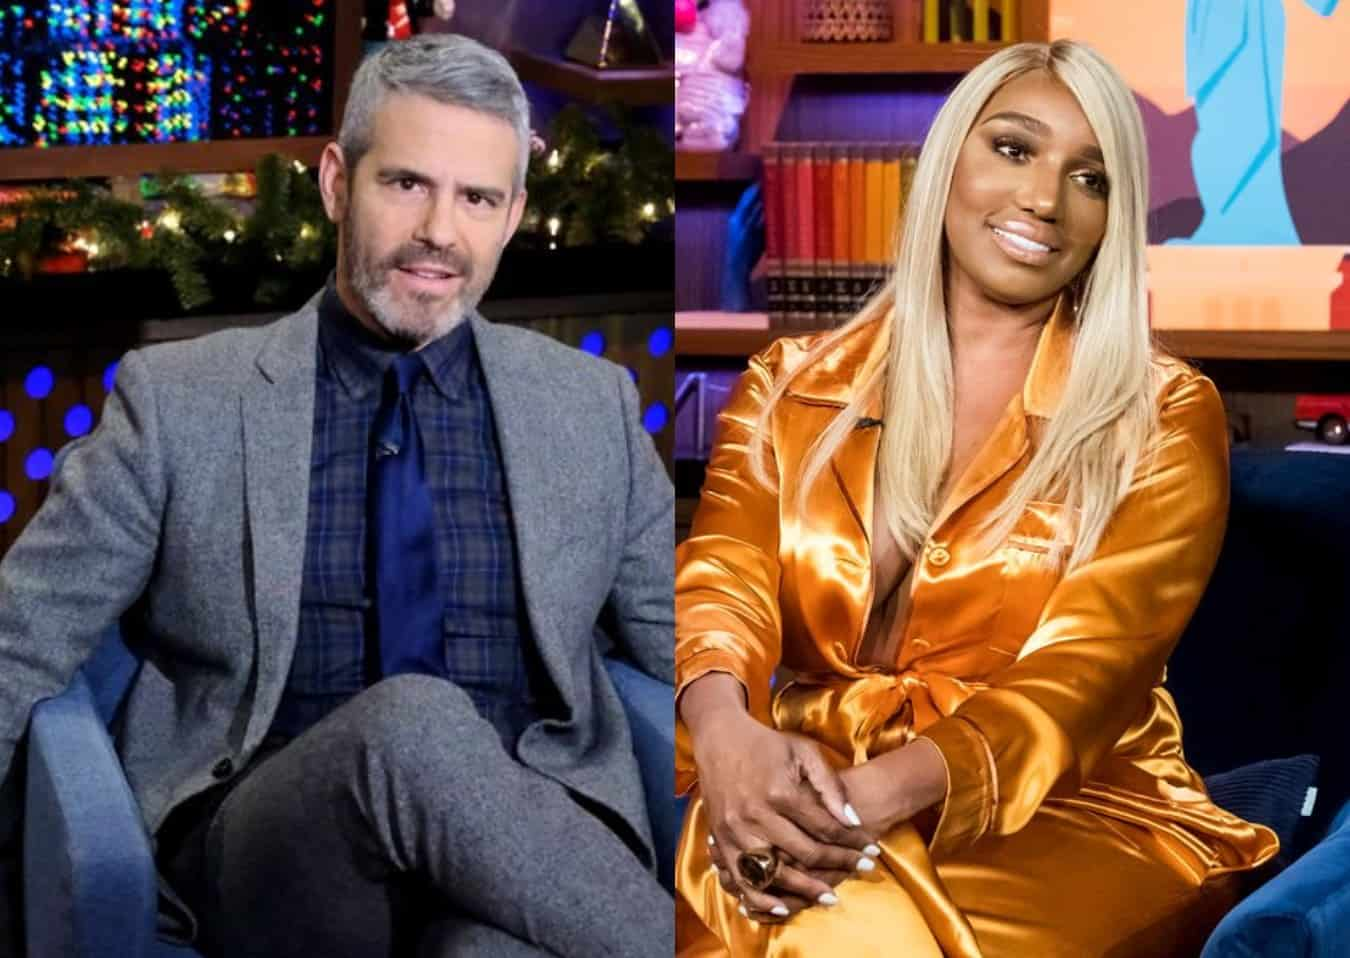 Andy Cohen Claps Back at Nene Leakes as RHOA Star Wonders if He Was Trying to Embarrass Her and Implies He Doesn't Like Her